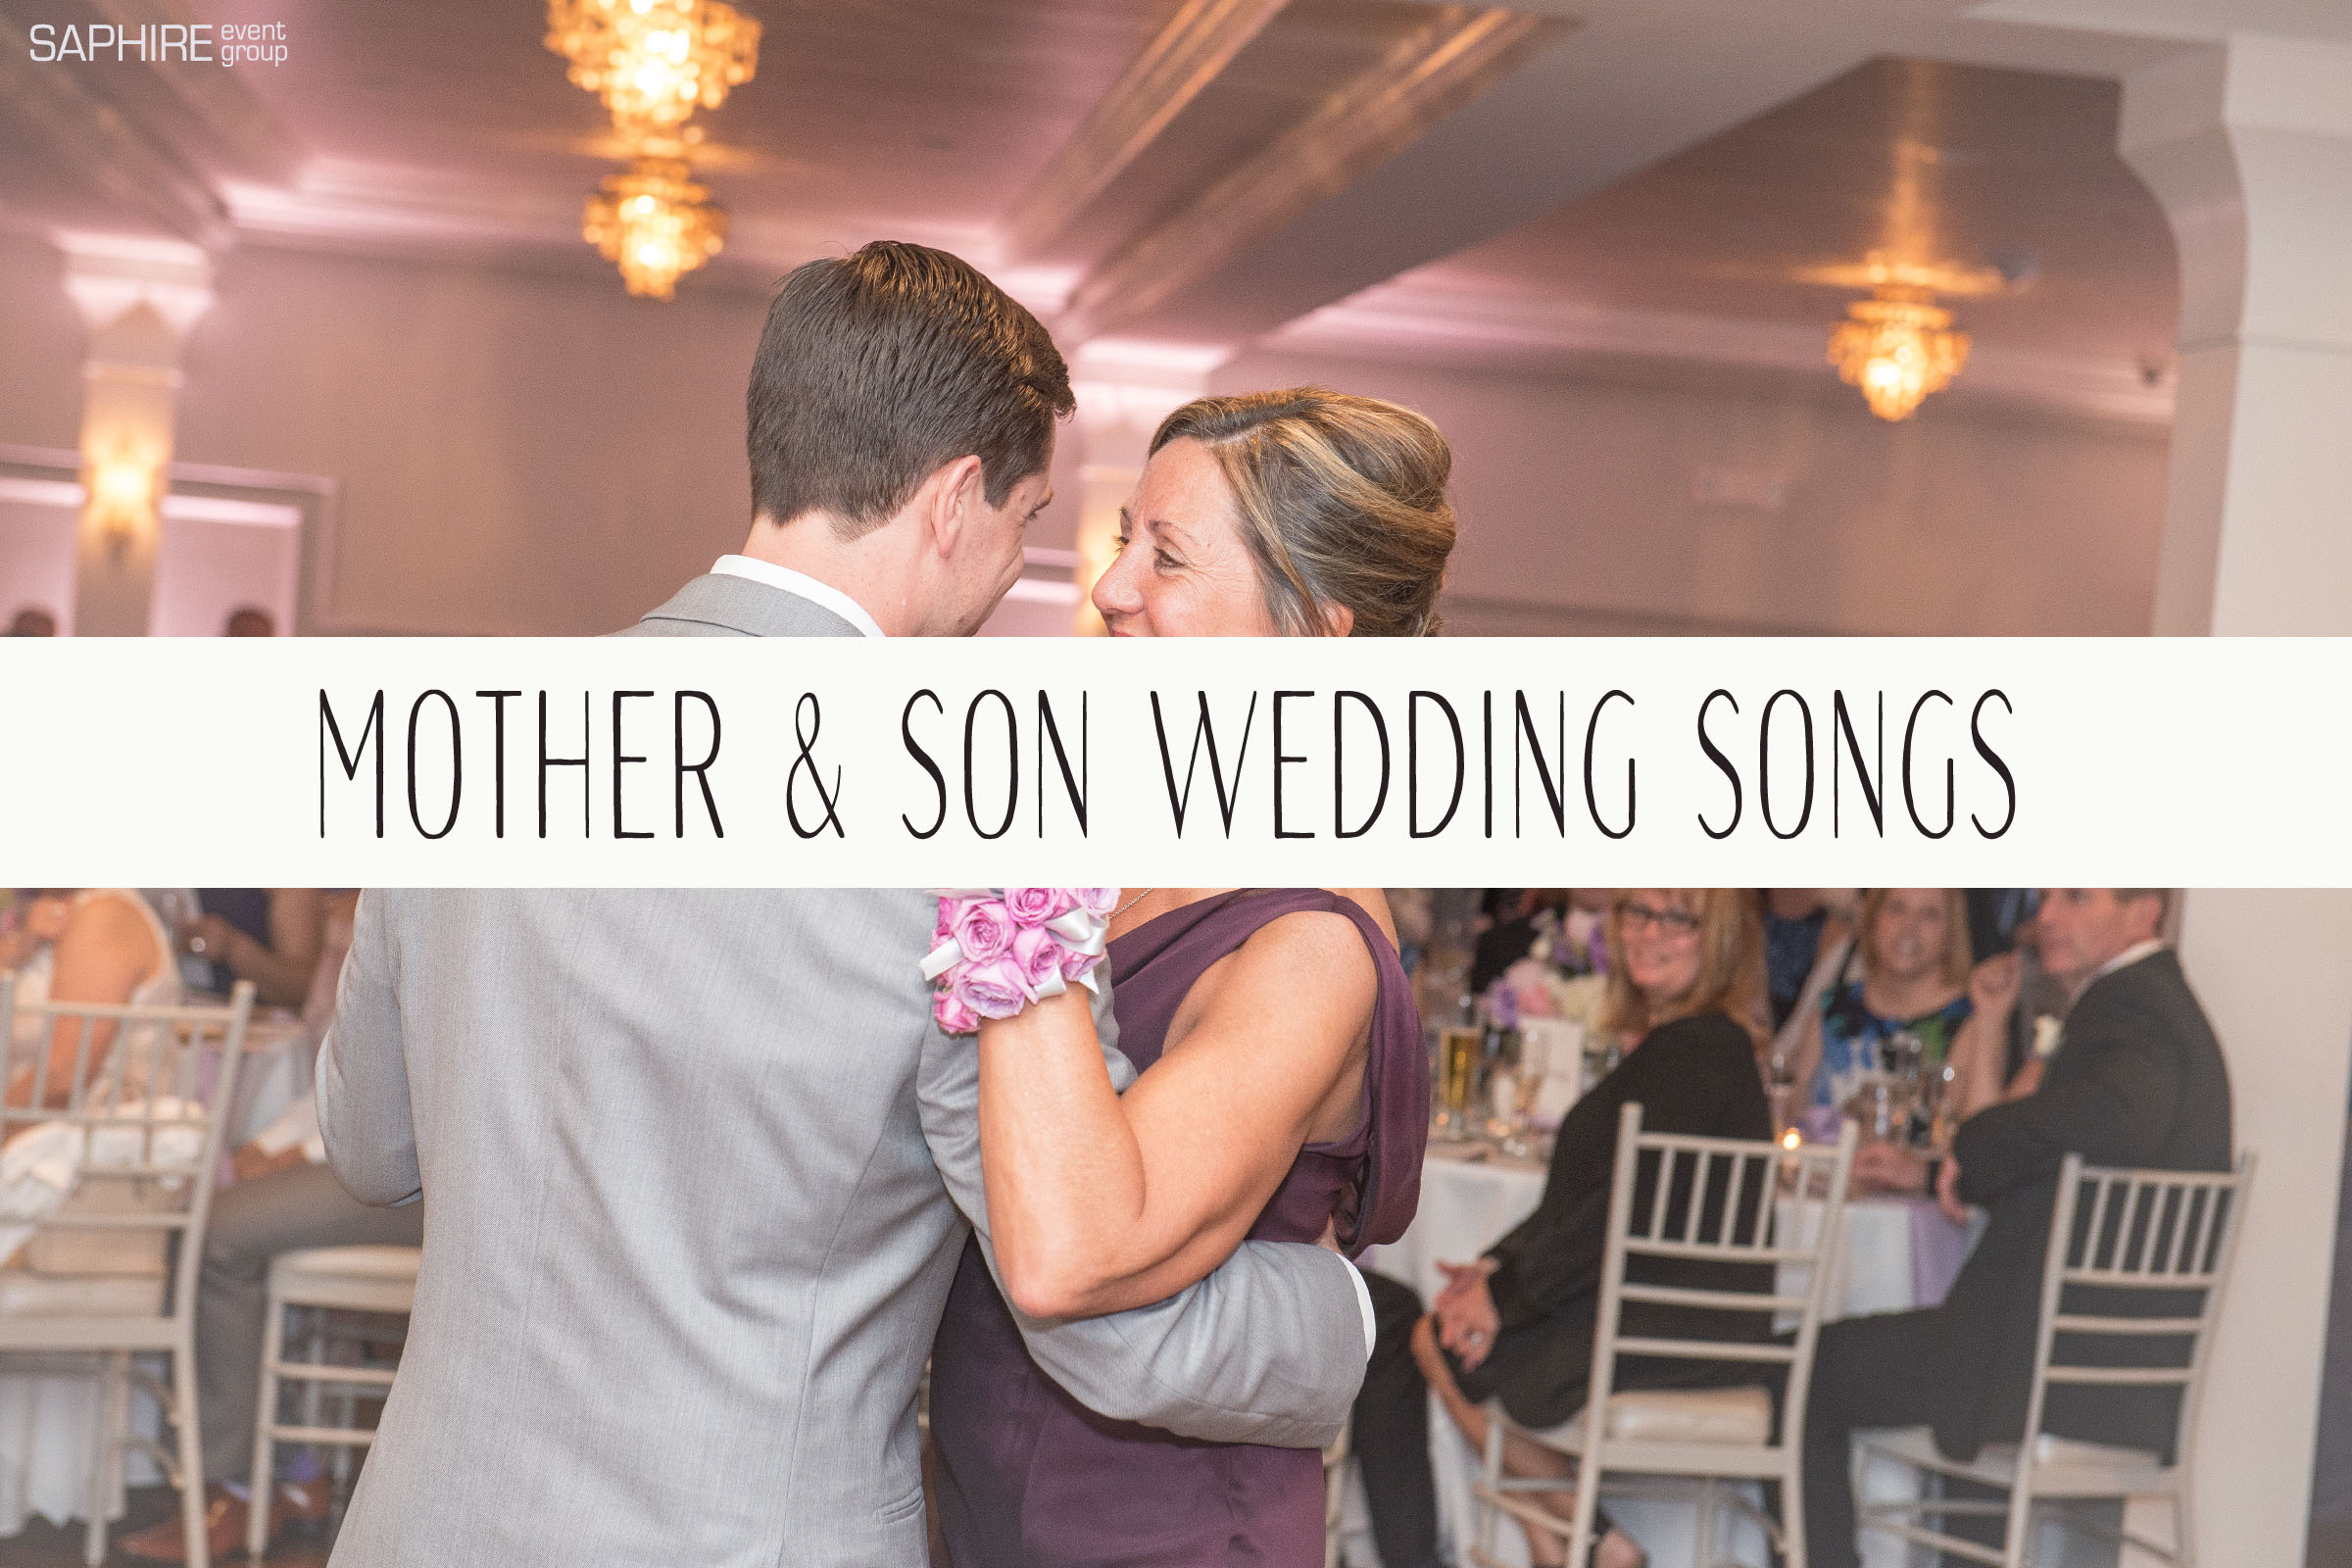 Mother And Son Wedding Dance Songs - Saphire Event Group